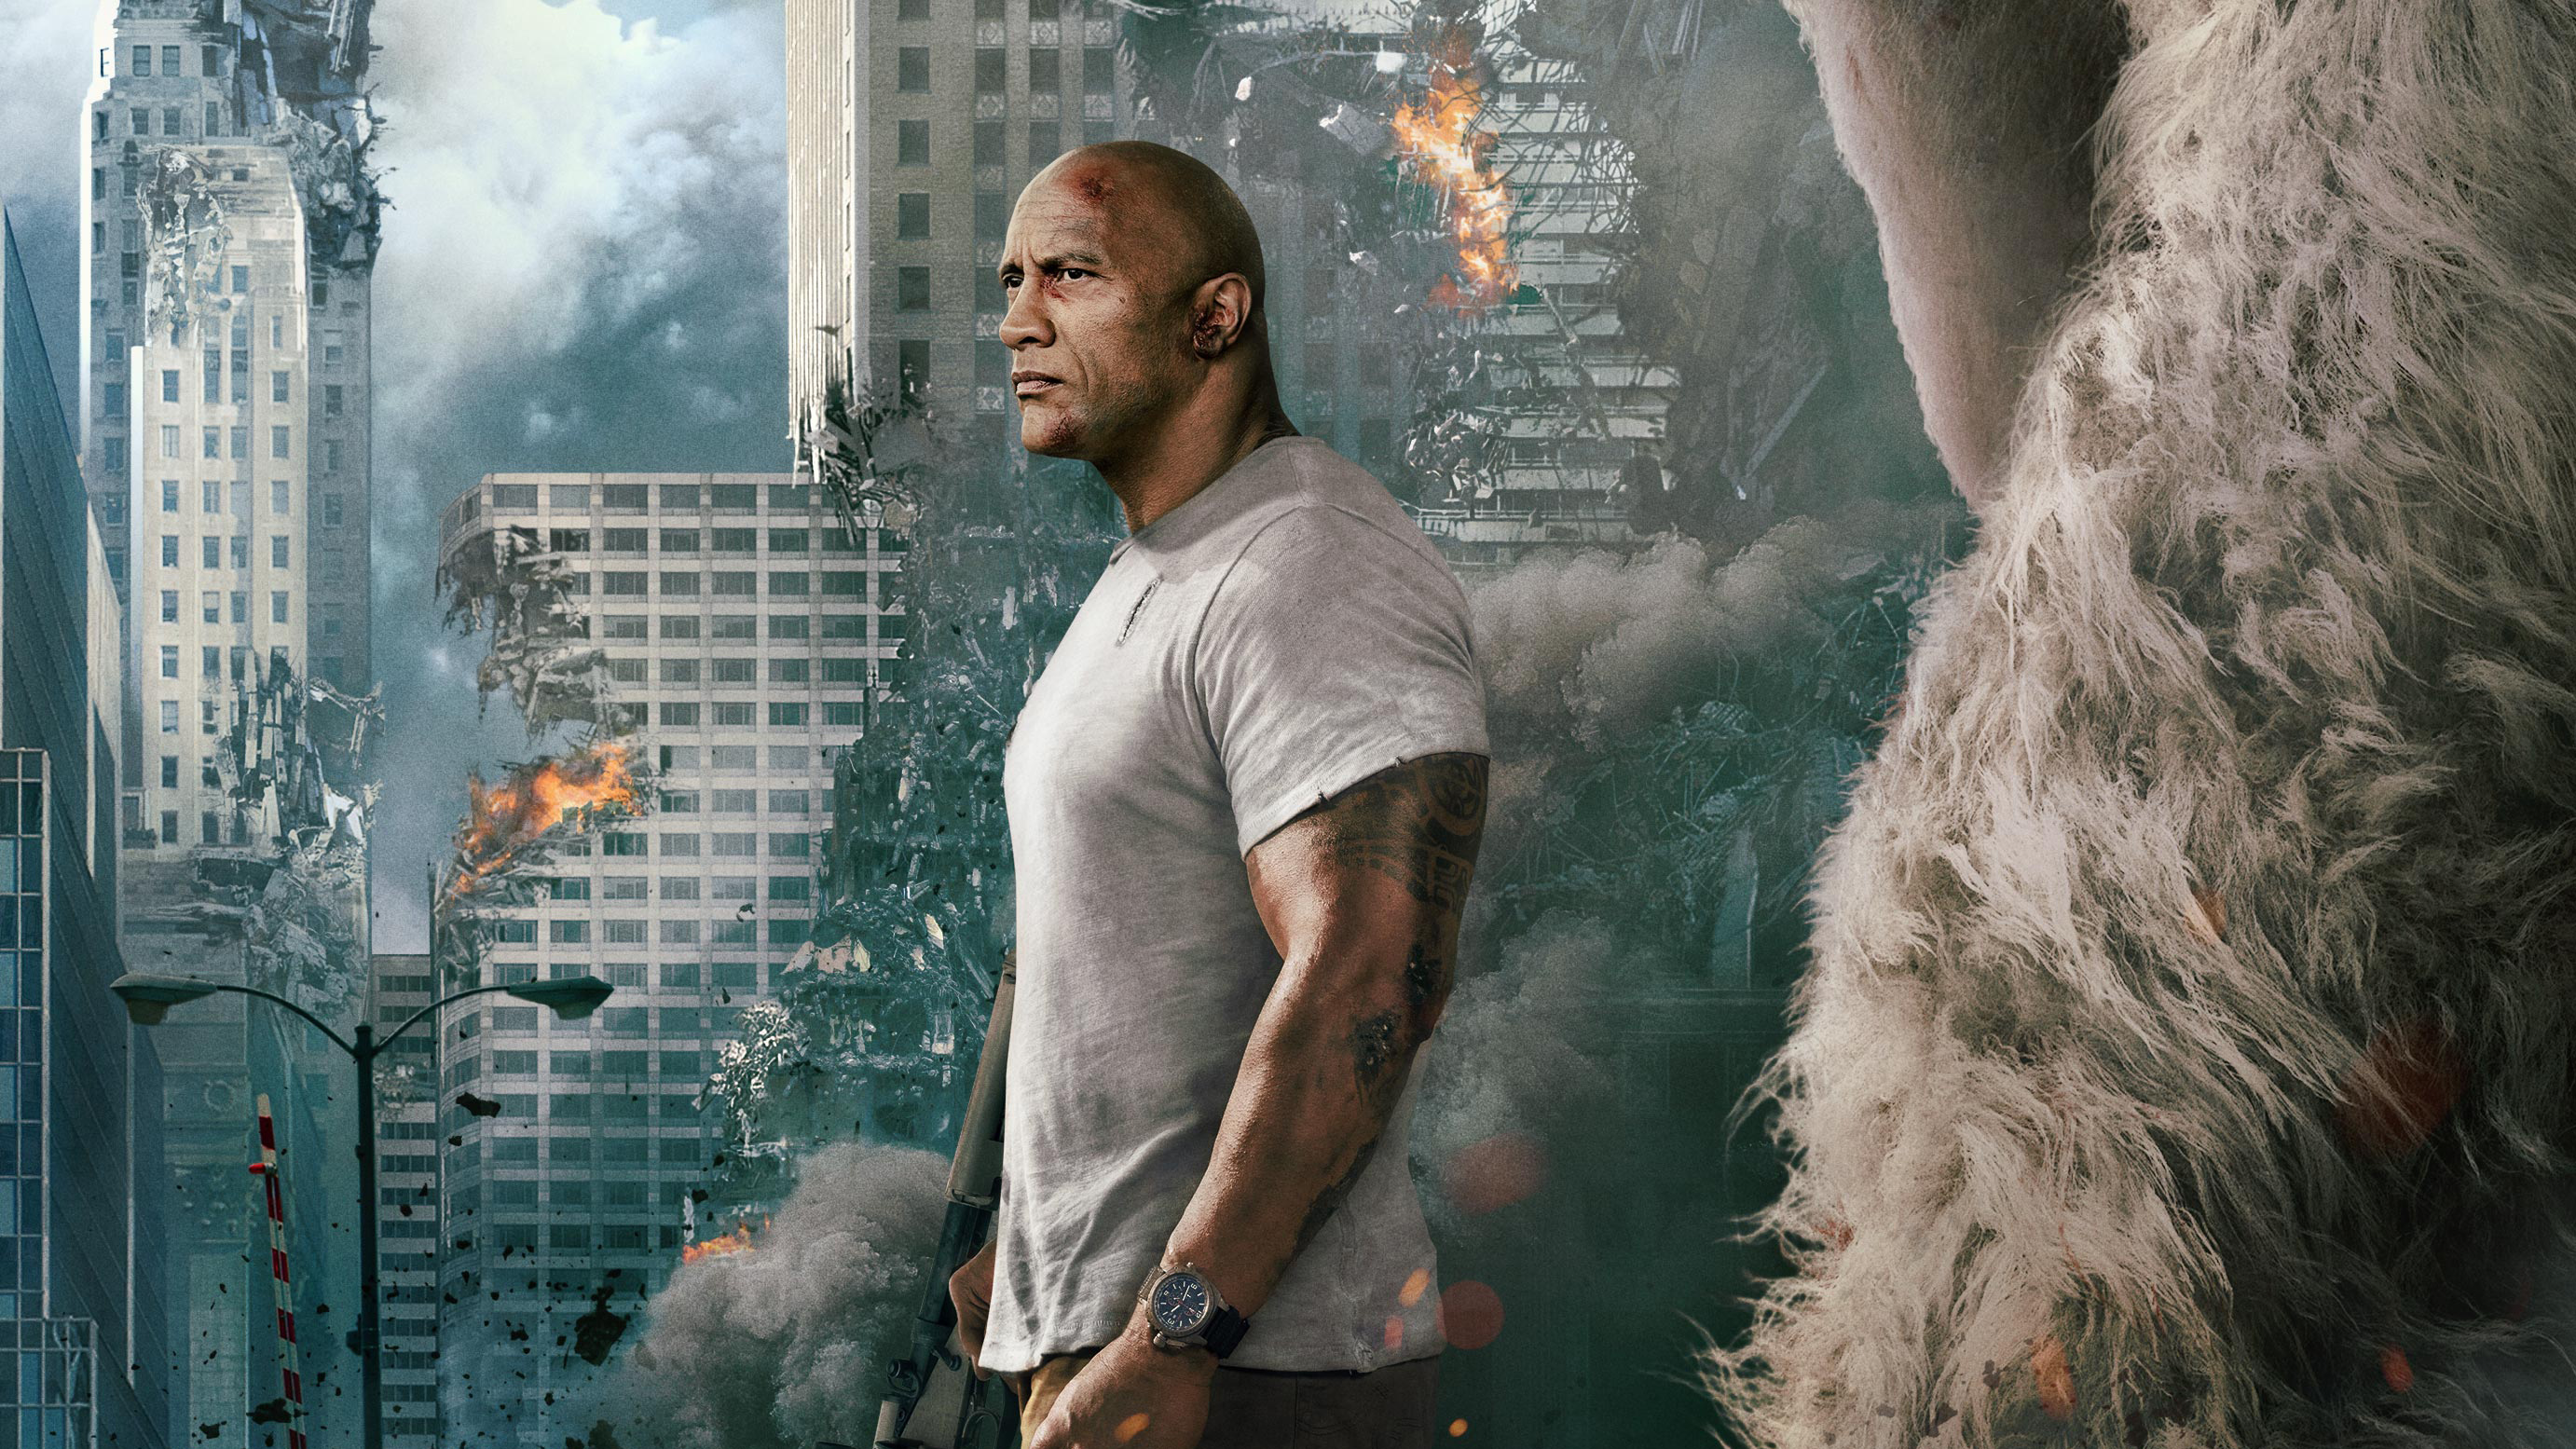 Rampage Movie Hd Wallpapers Download 1080p: Rampage Dwayne Johnson Movie, HD Movies, 4k Wallpapers